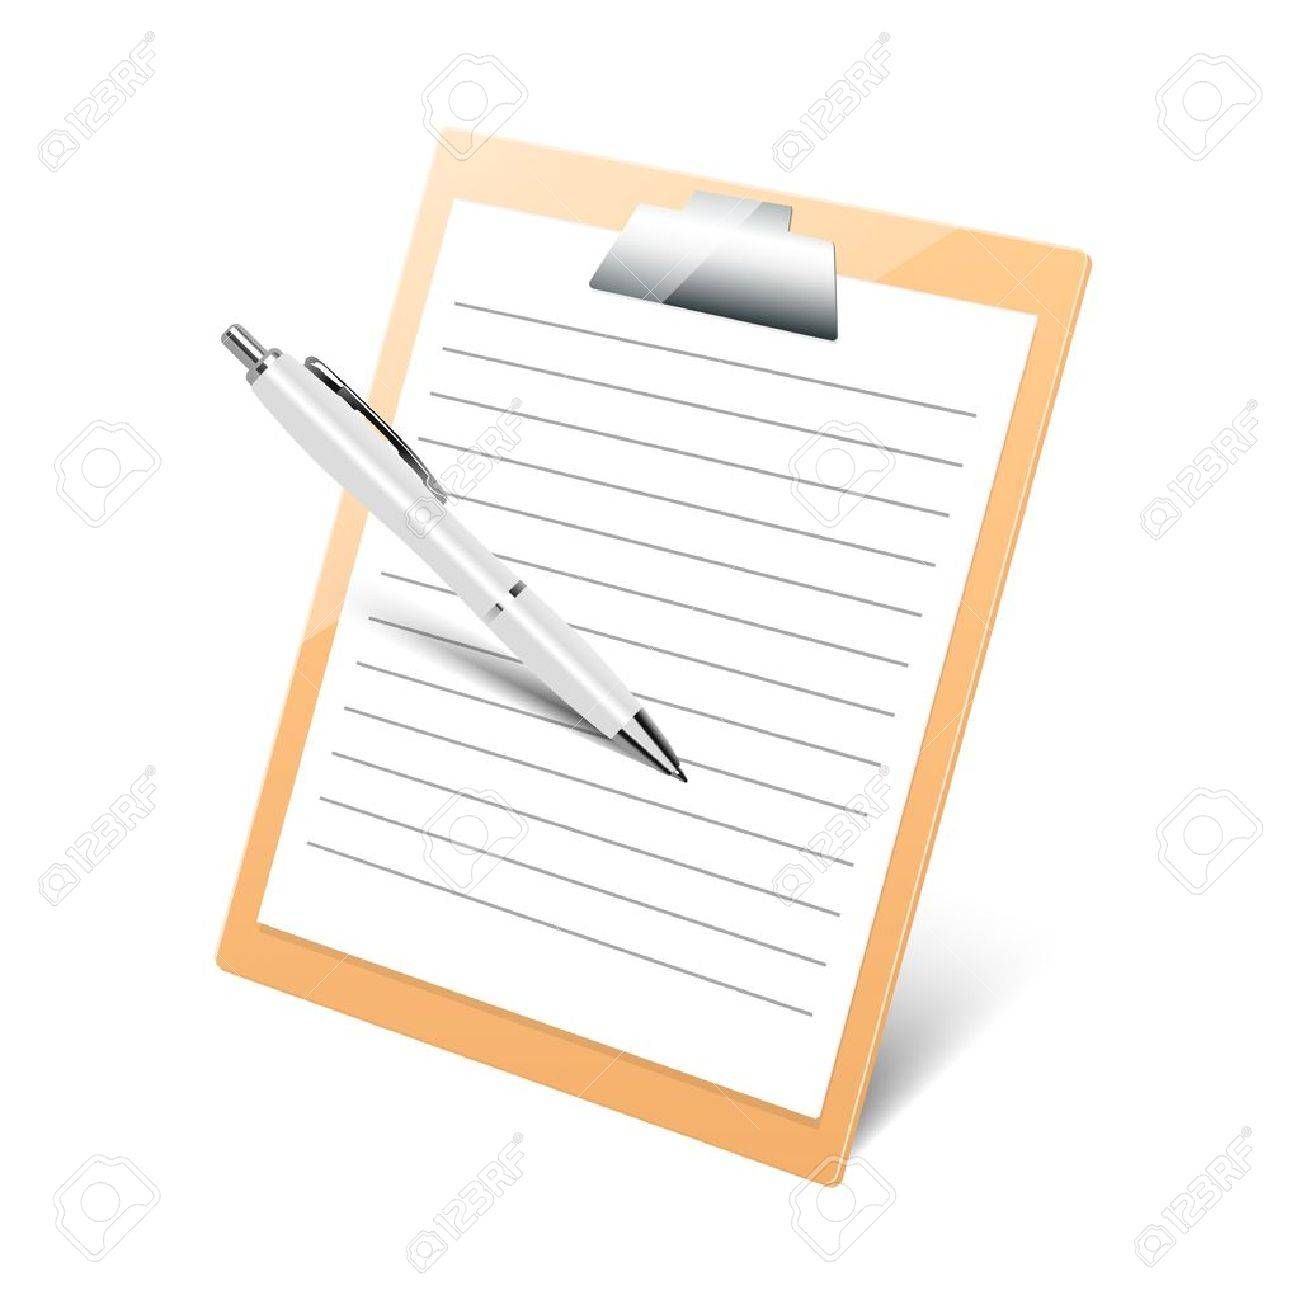 clipboard with pen on white background - 16952901